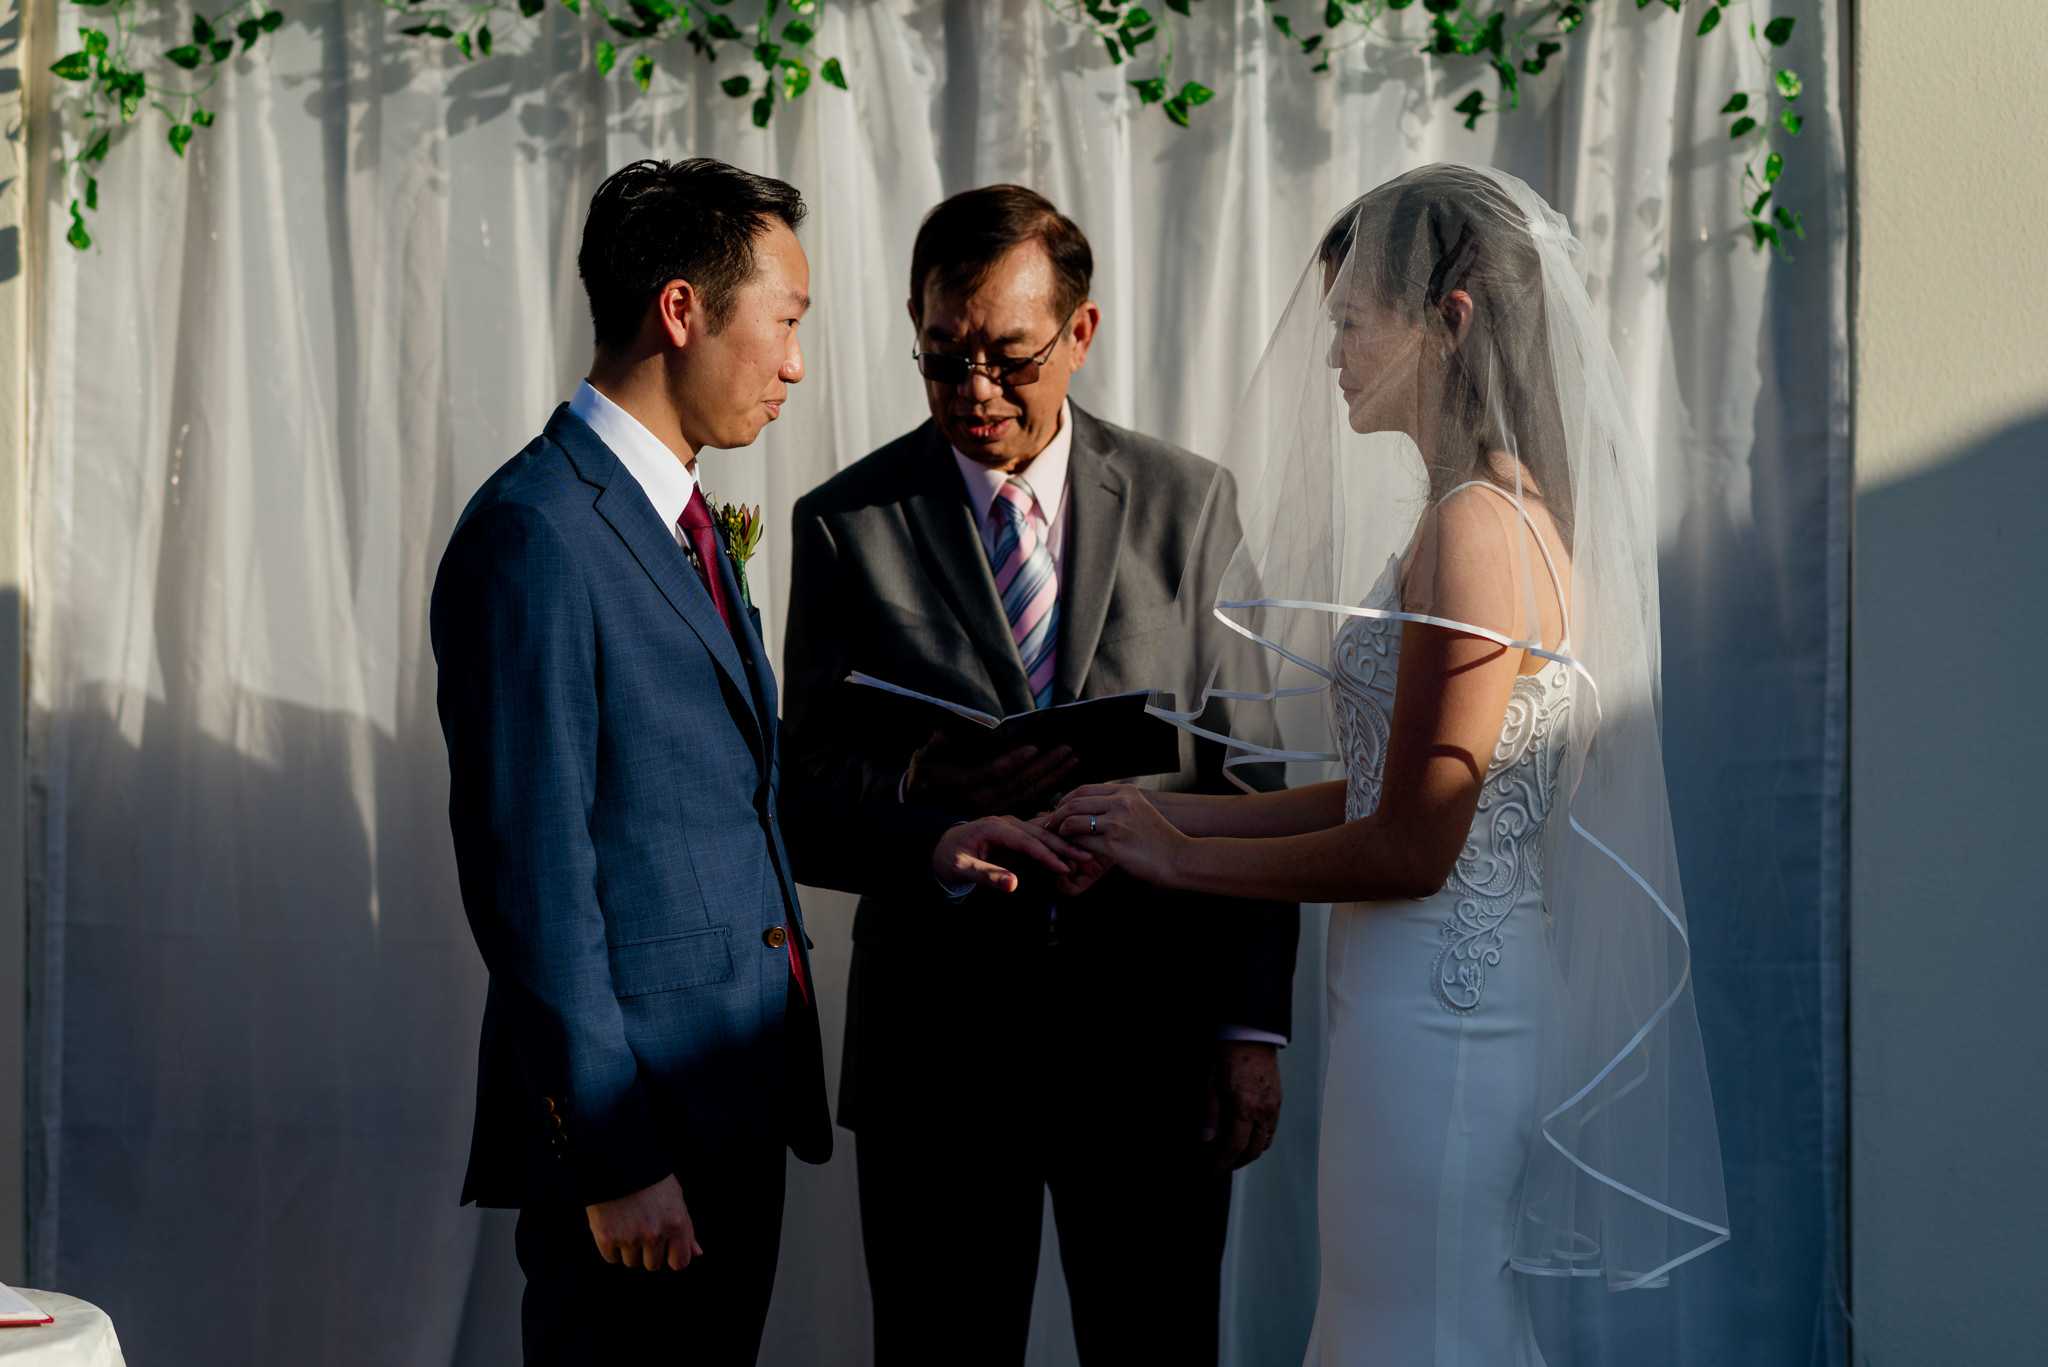 An Asian bride places a wedding ring on her groom's finger during their wedding ceremony